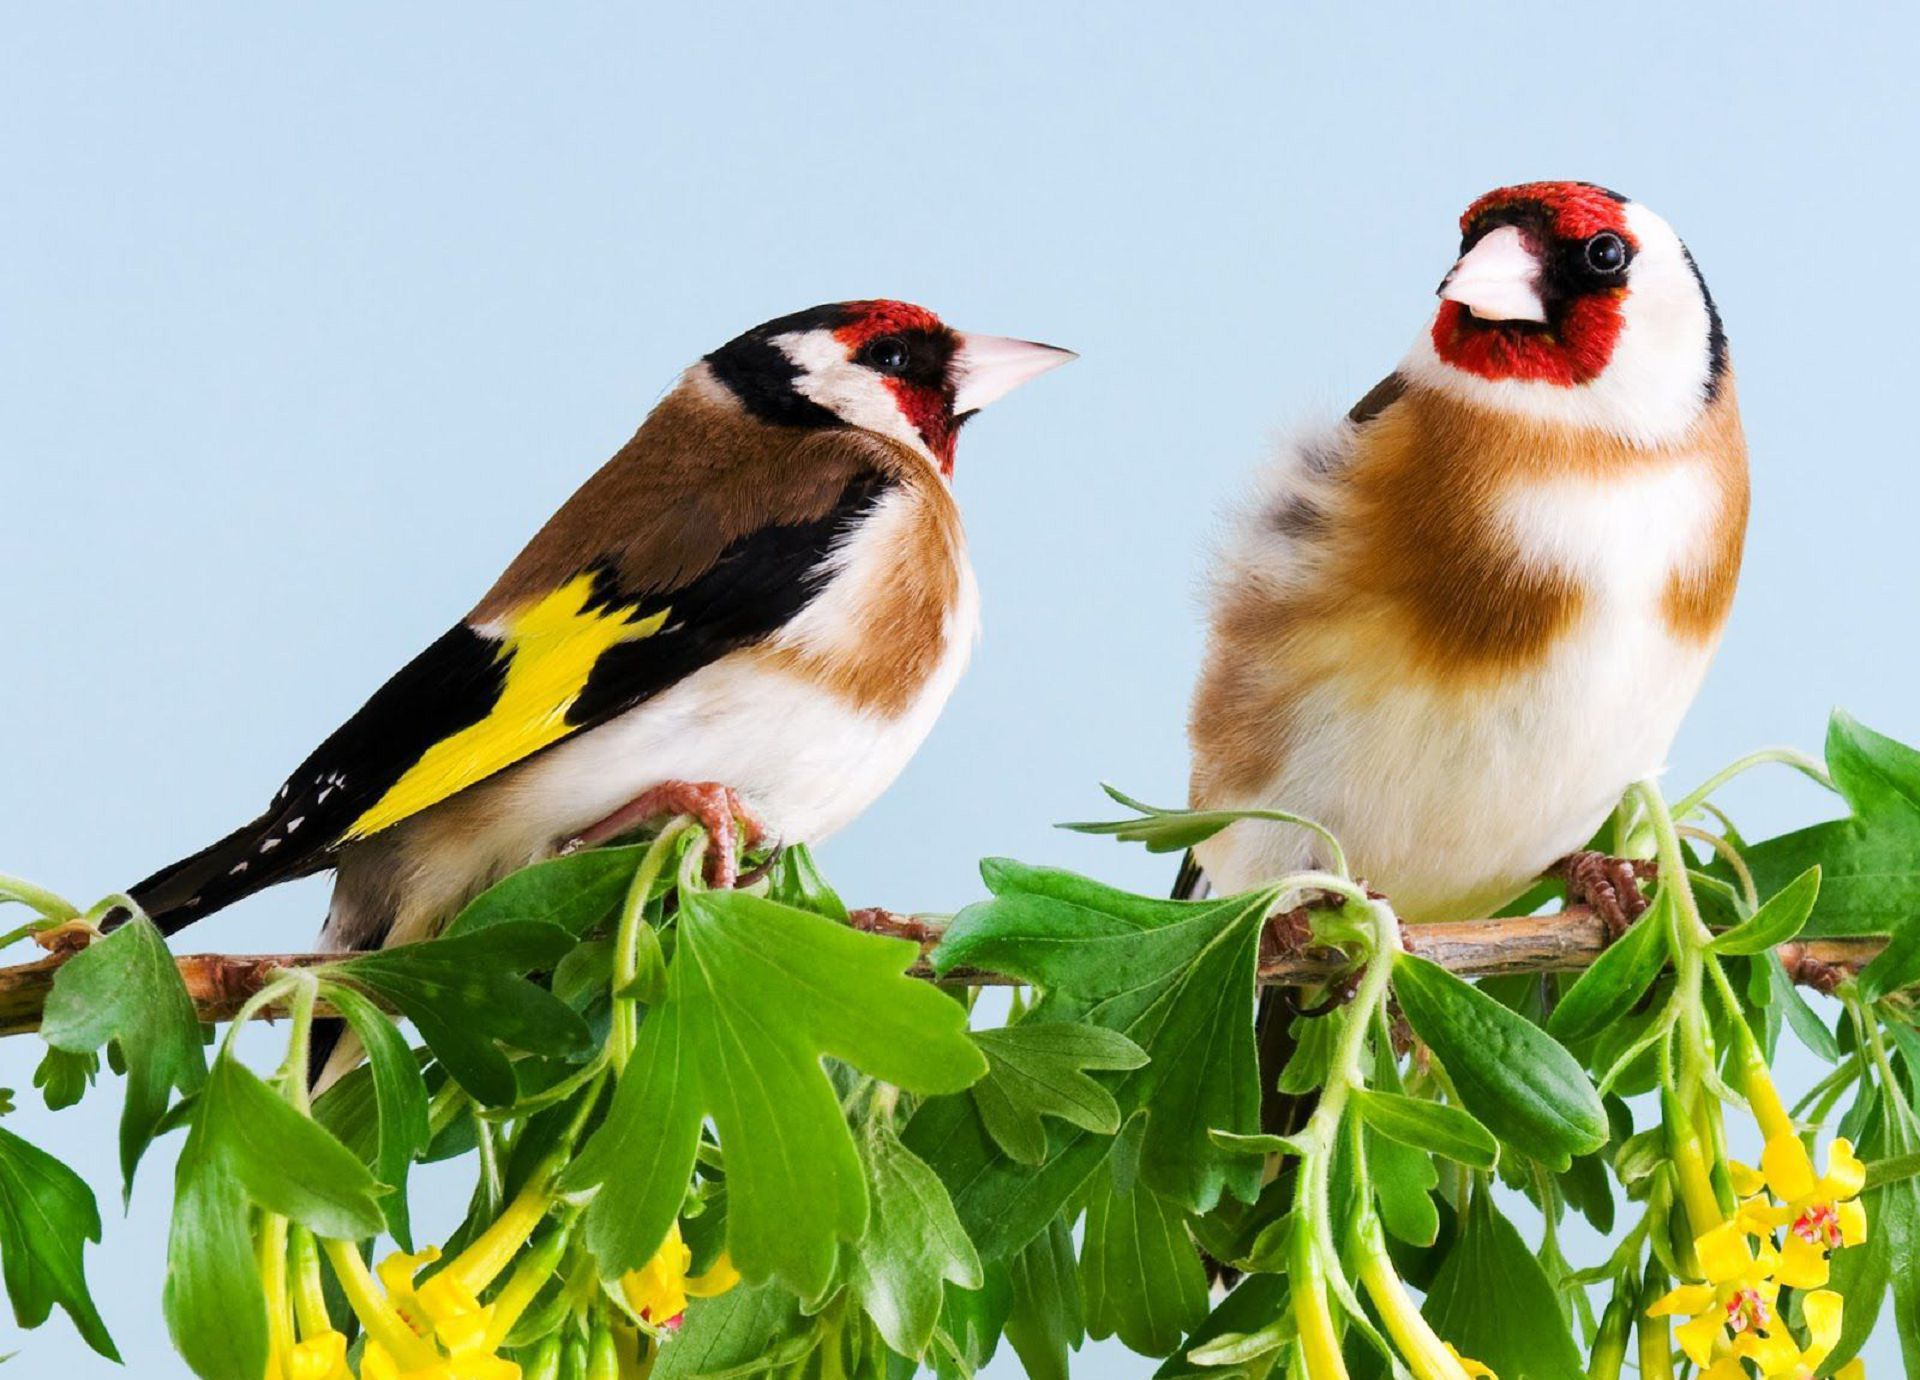 Aves Exoticas High Quality Wallpapers